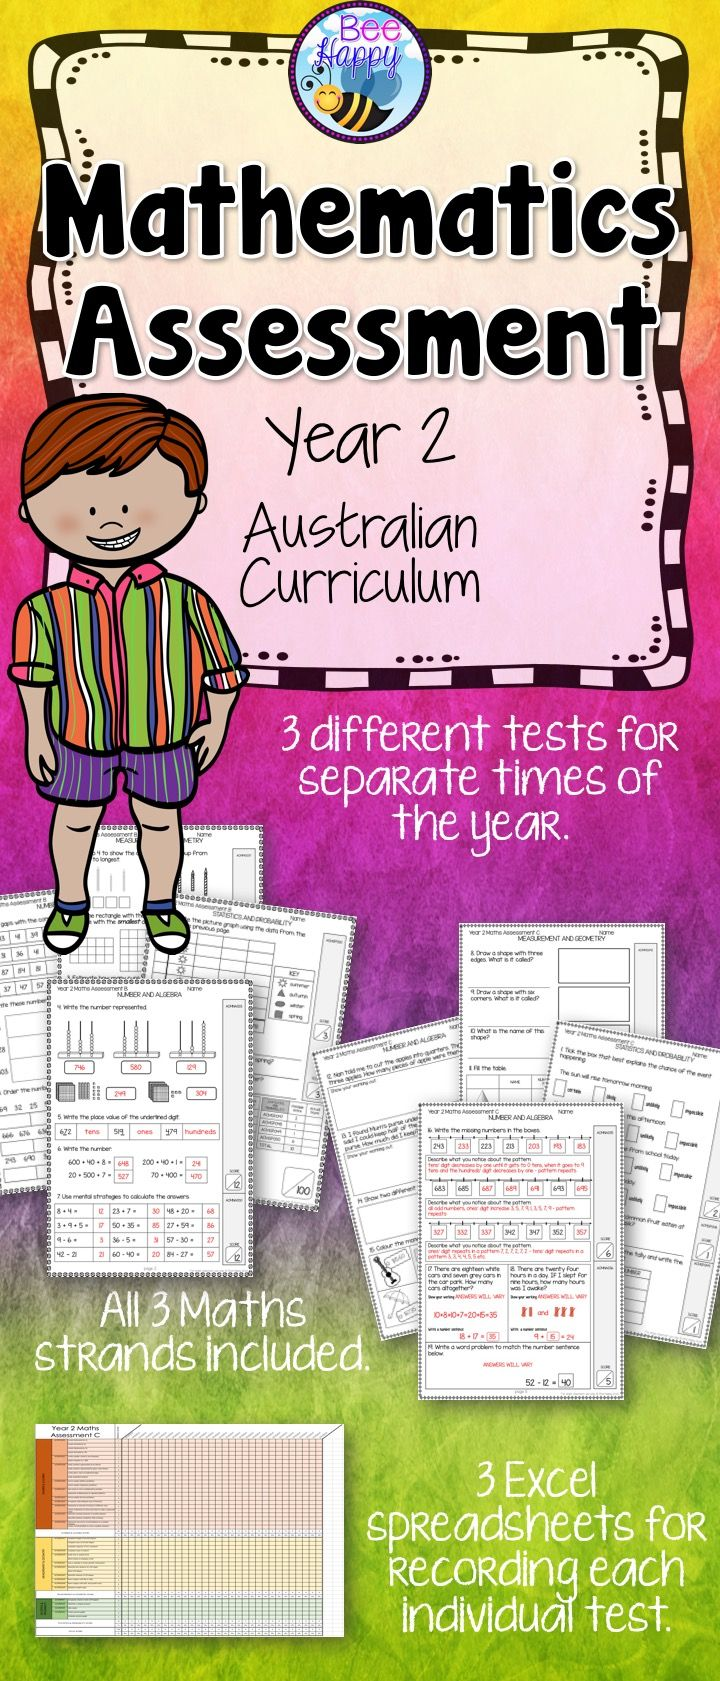 These Maths tests, for year two students, are linked to the Australian Curriculum. They cover Number & Algebra, Measurement & Geometry and Statistics & Probability. This package includes three assessments that will help to provide data that can be used to inform judgements of student achievement at different times of the school year.